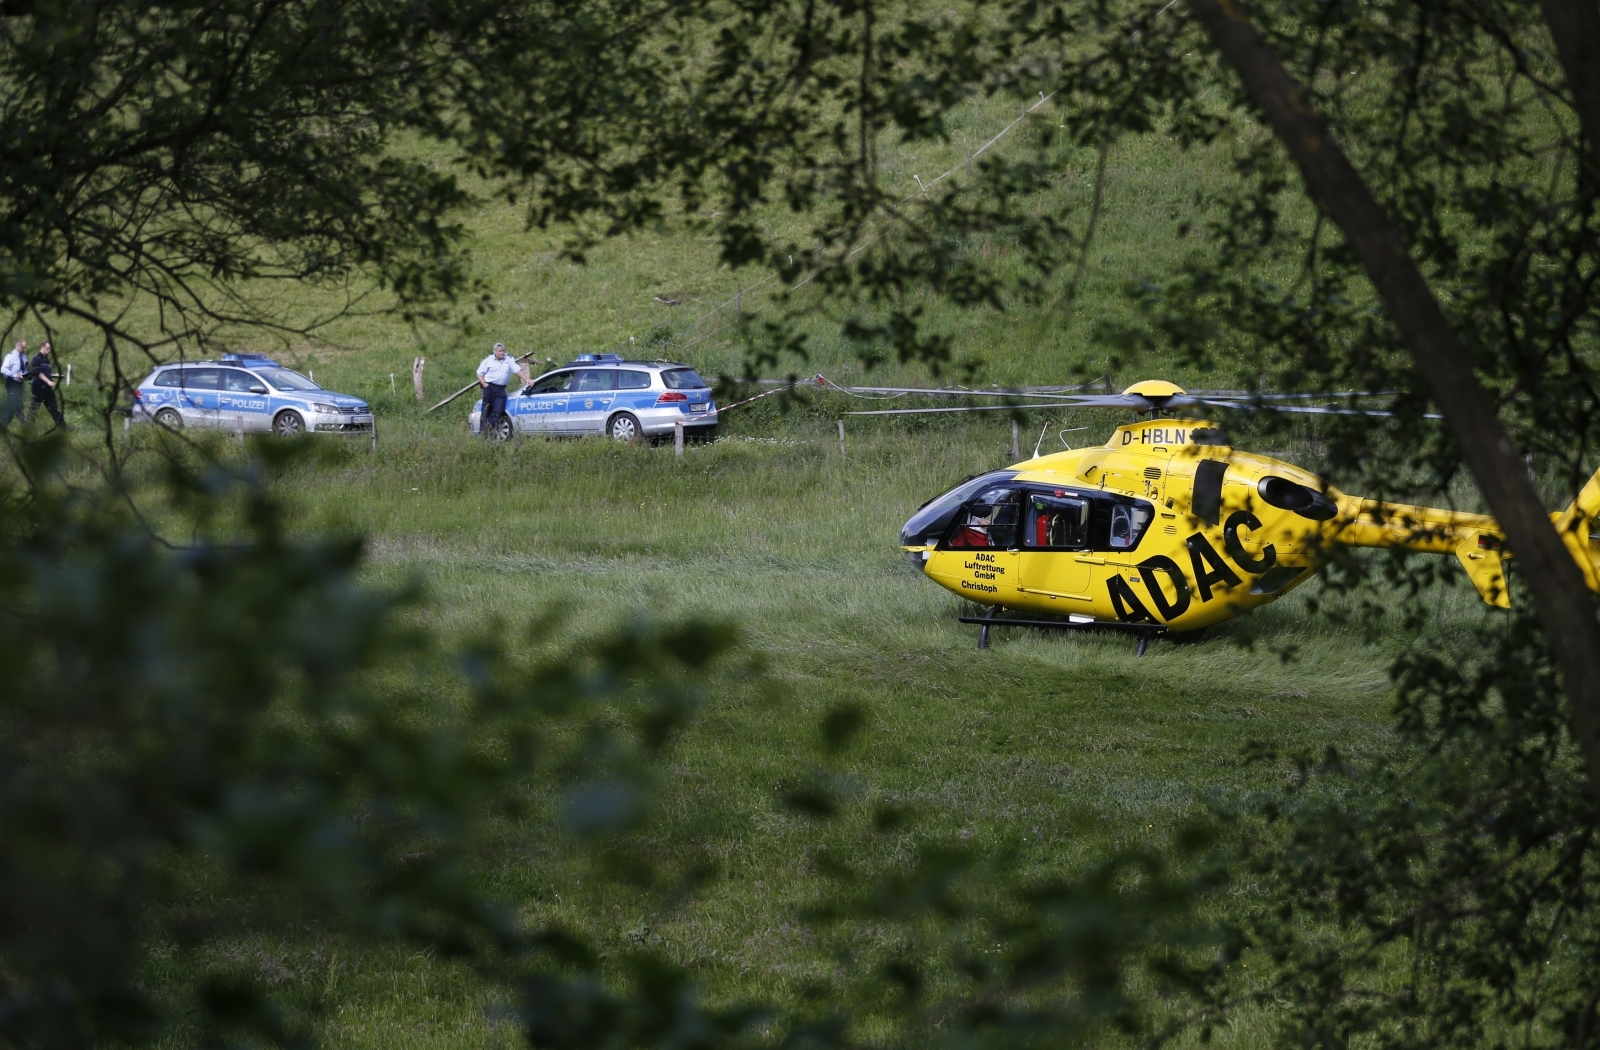 A German rescue helicopter collided in mid-air with a small plane killing four people